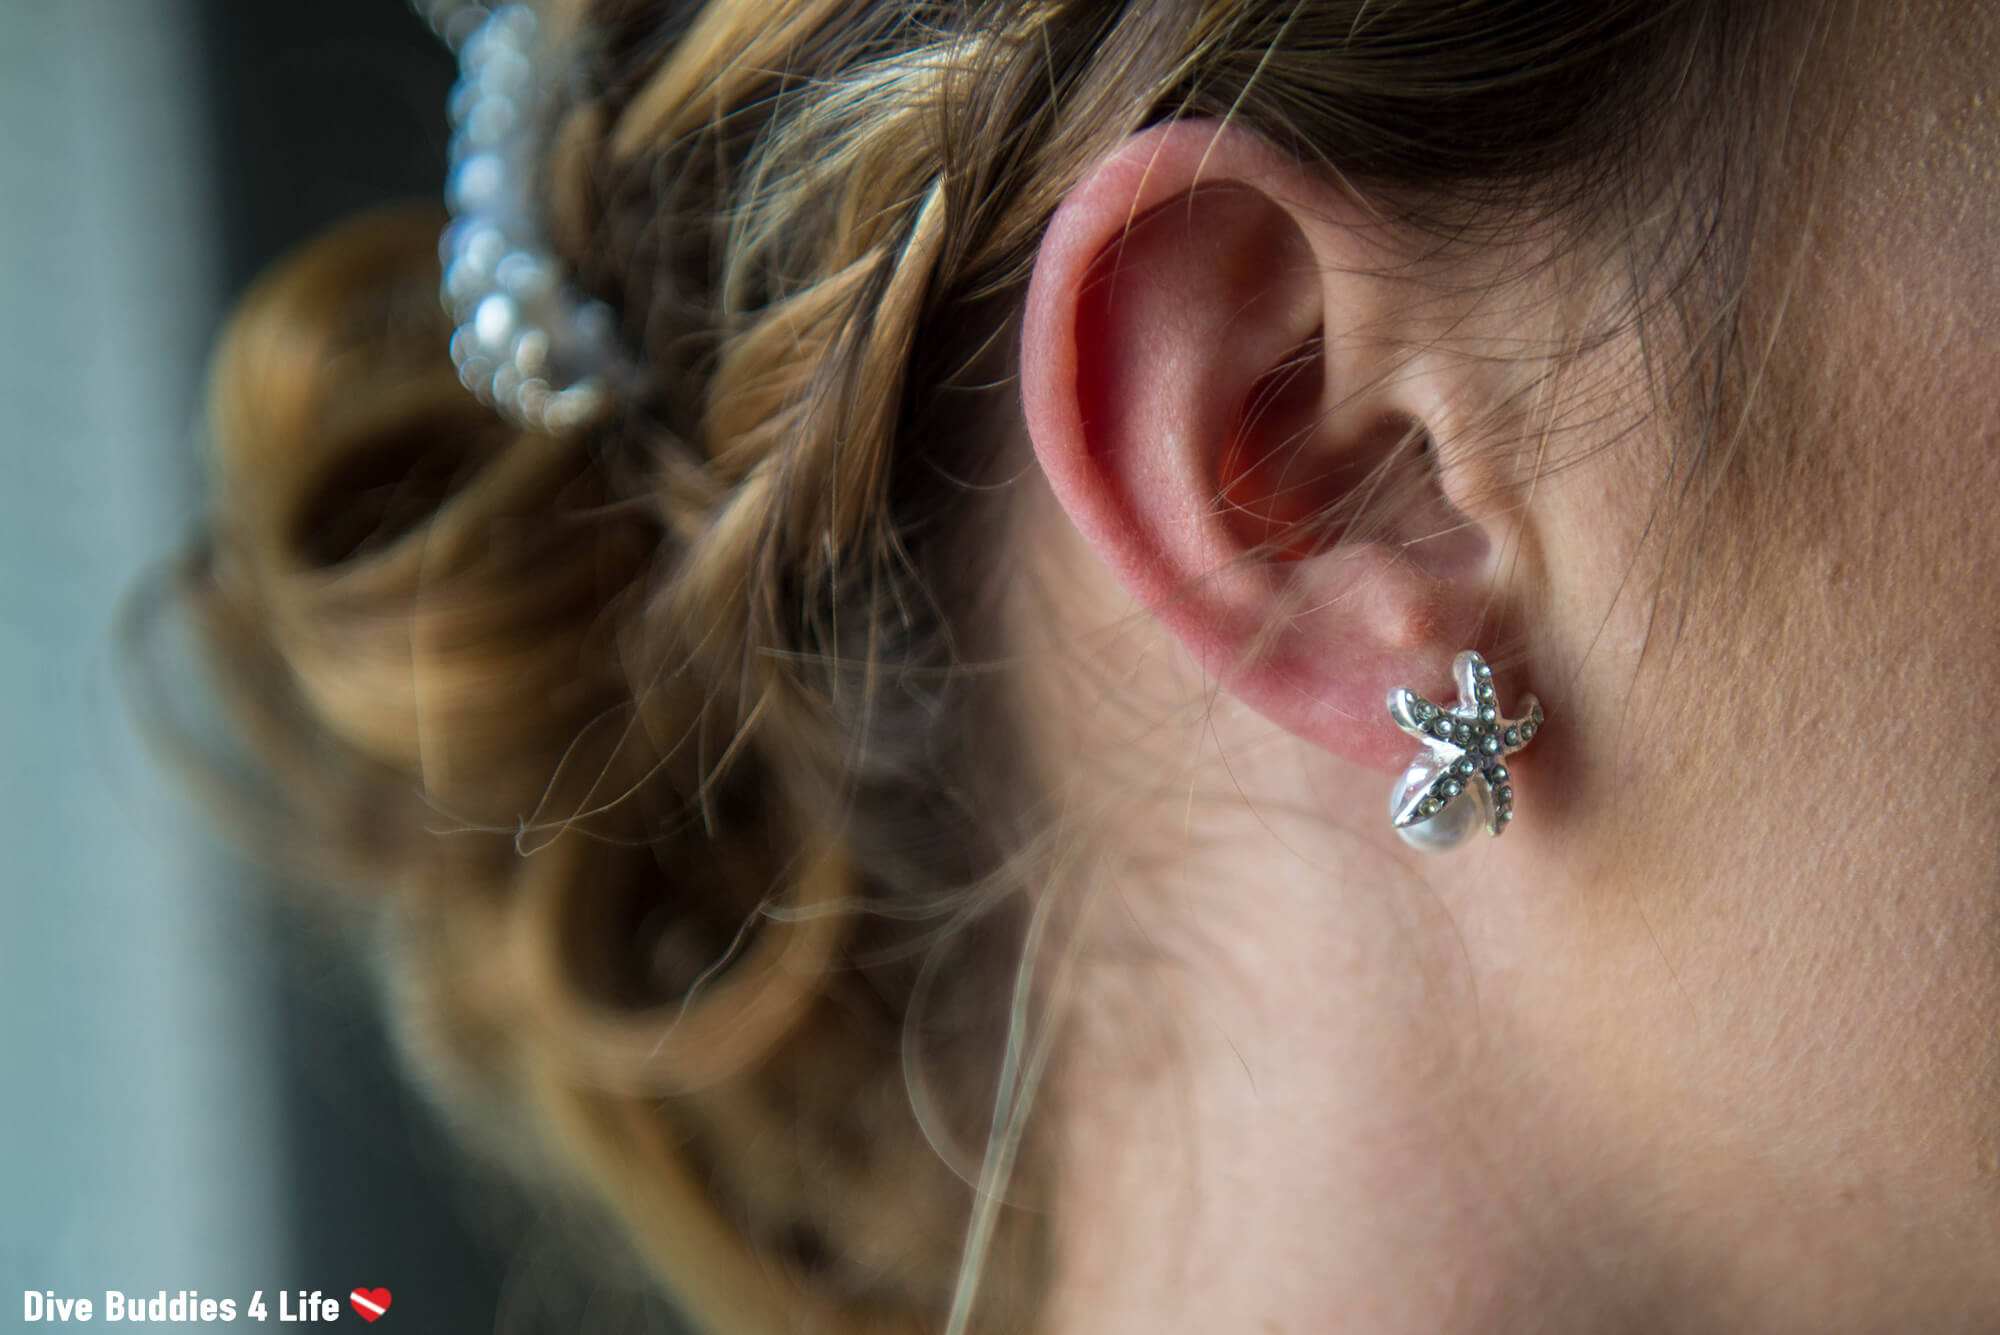 Ali's Sea Star And Pearl Earrings For Her Ocean Themed Wedding